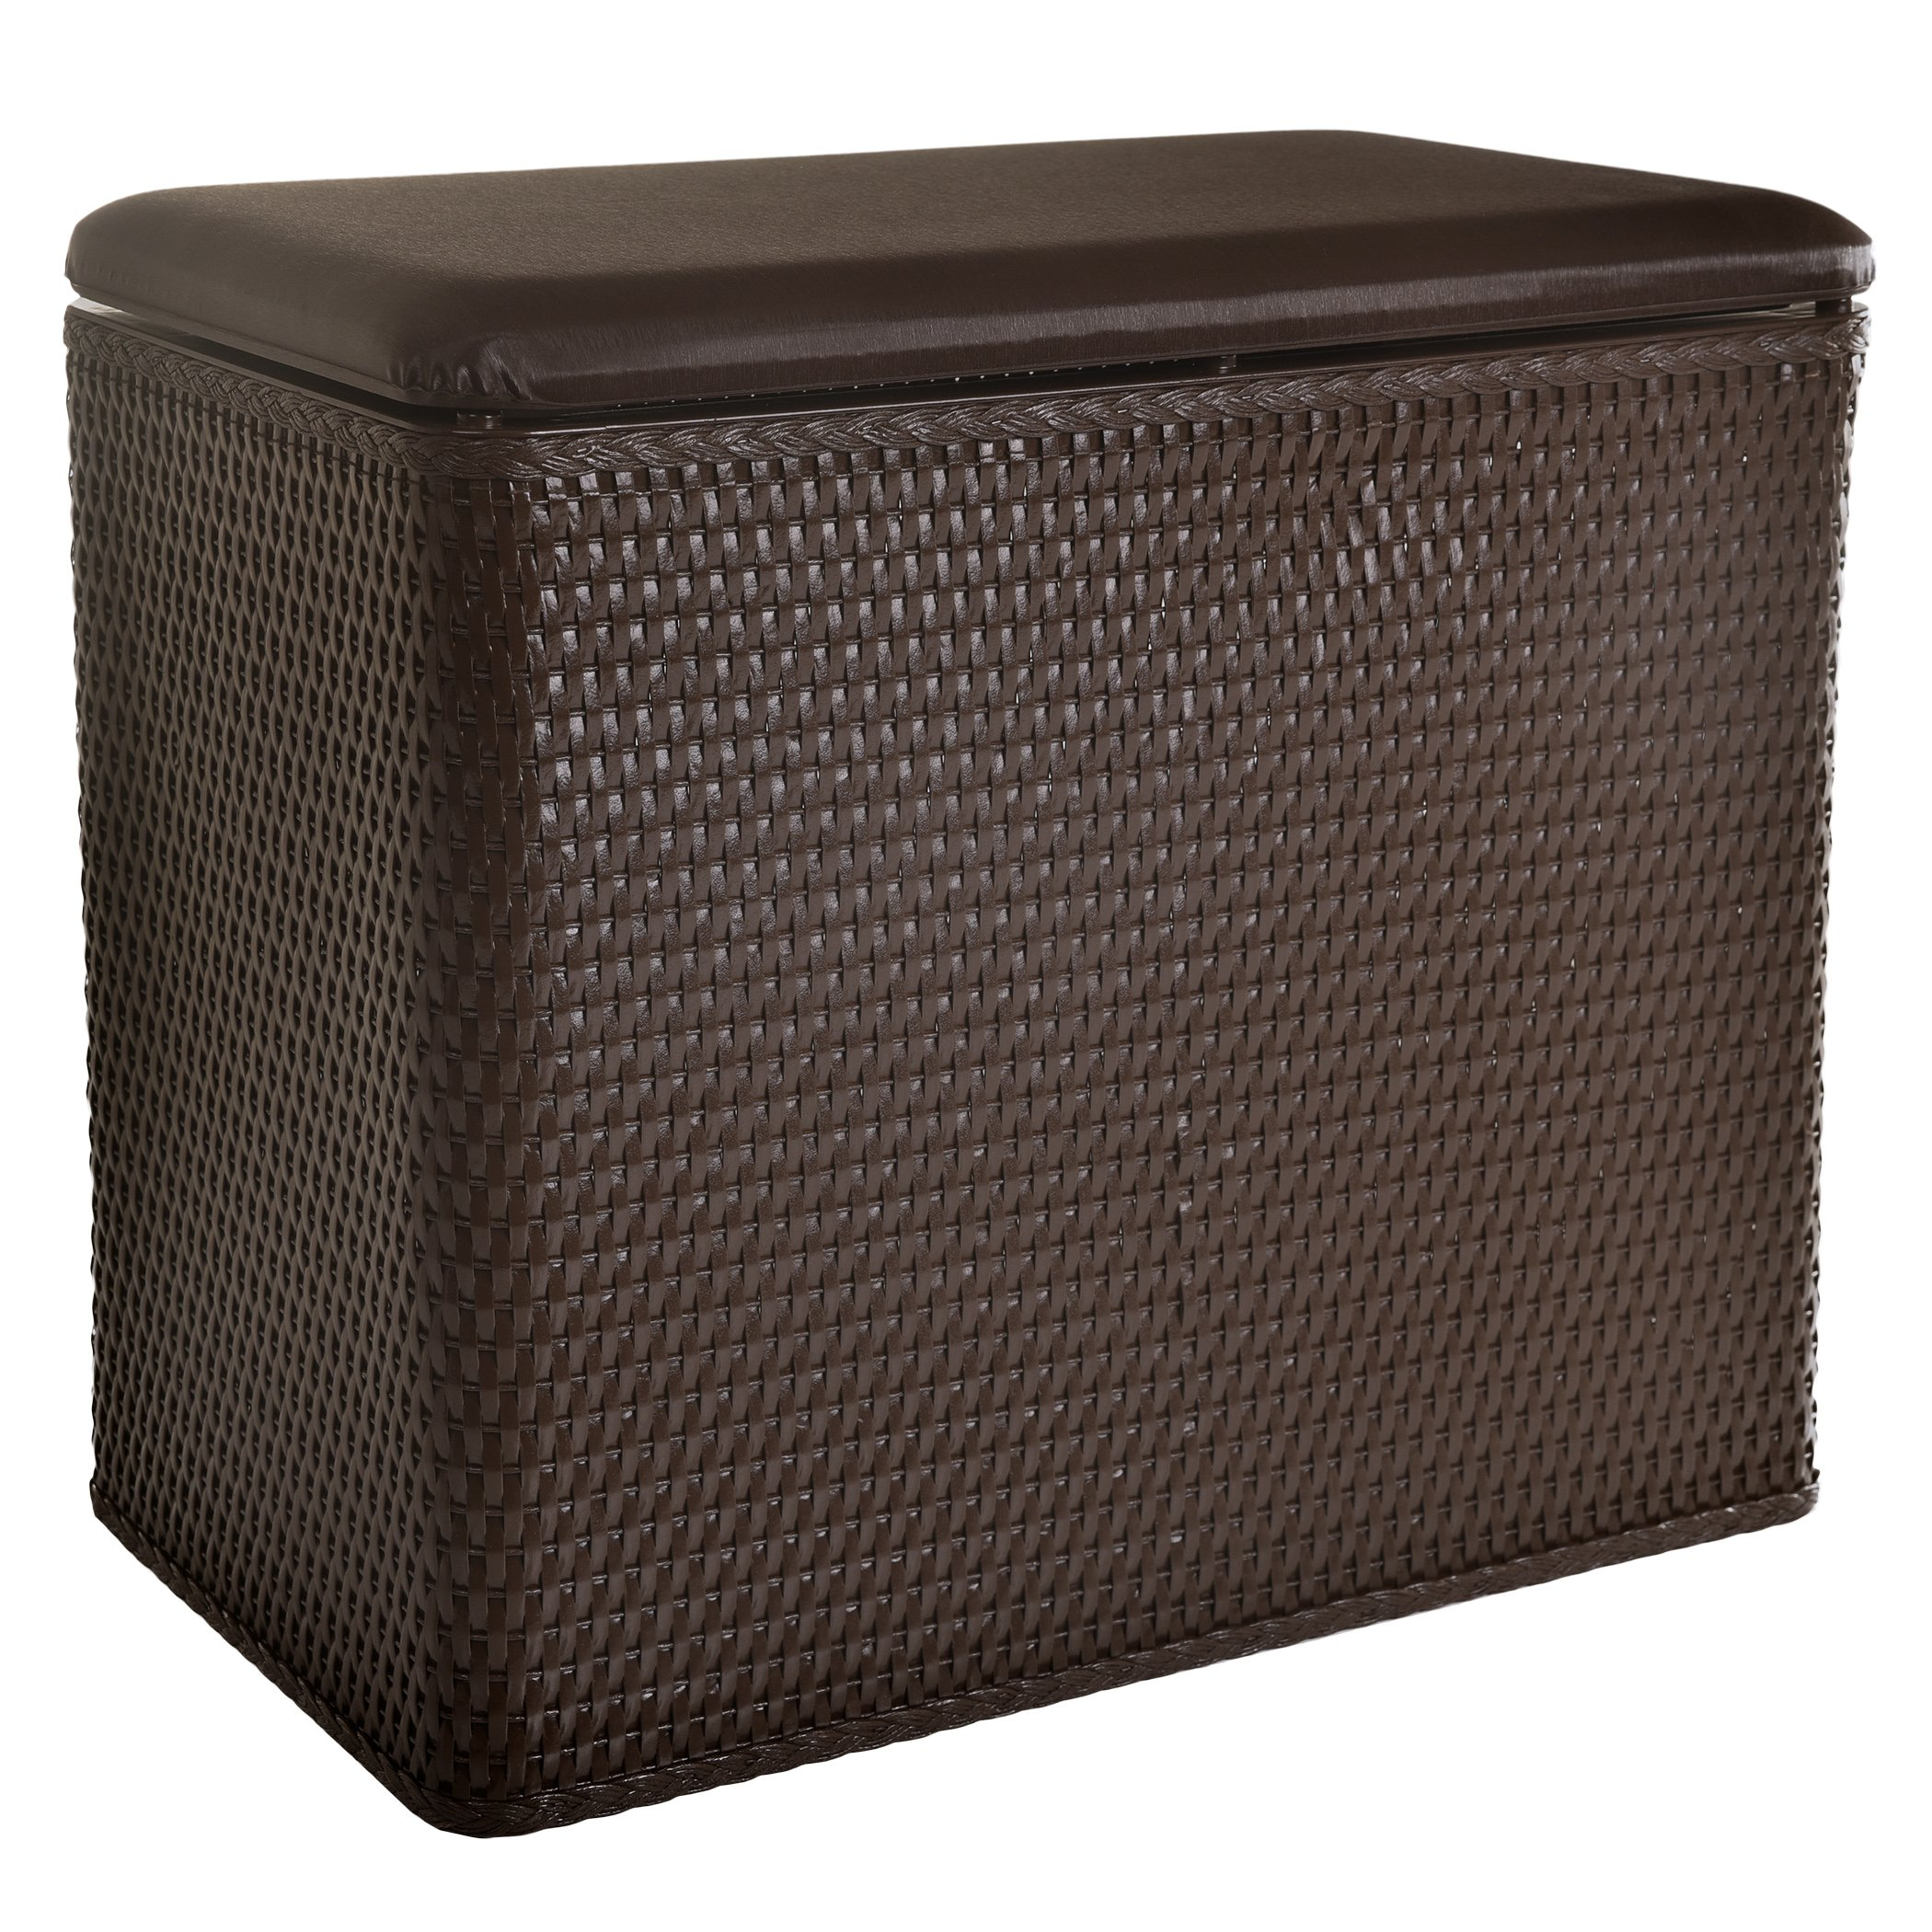 Lamont Home Carter Bench Wicker Laundry Hamper With